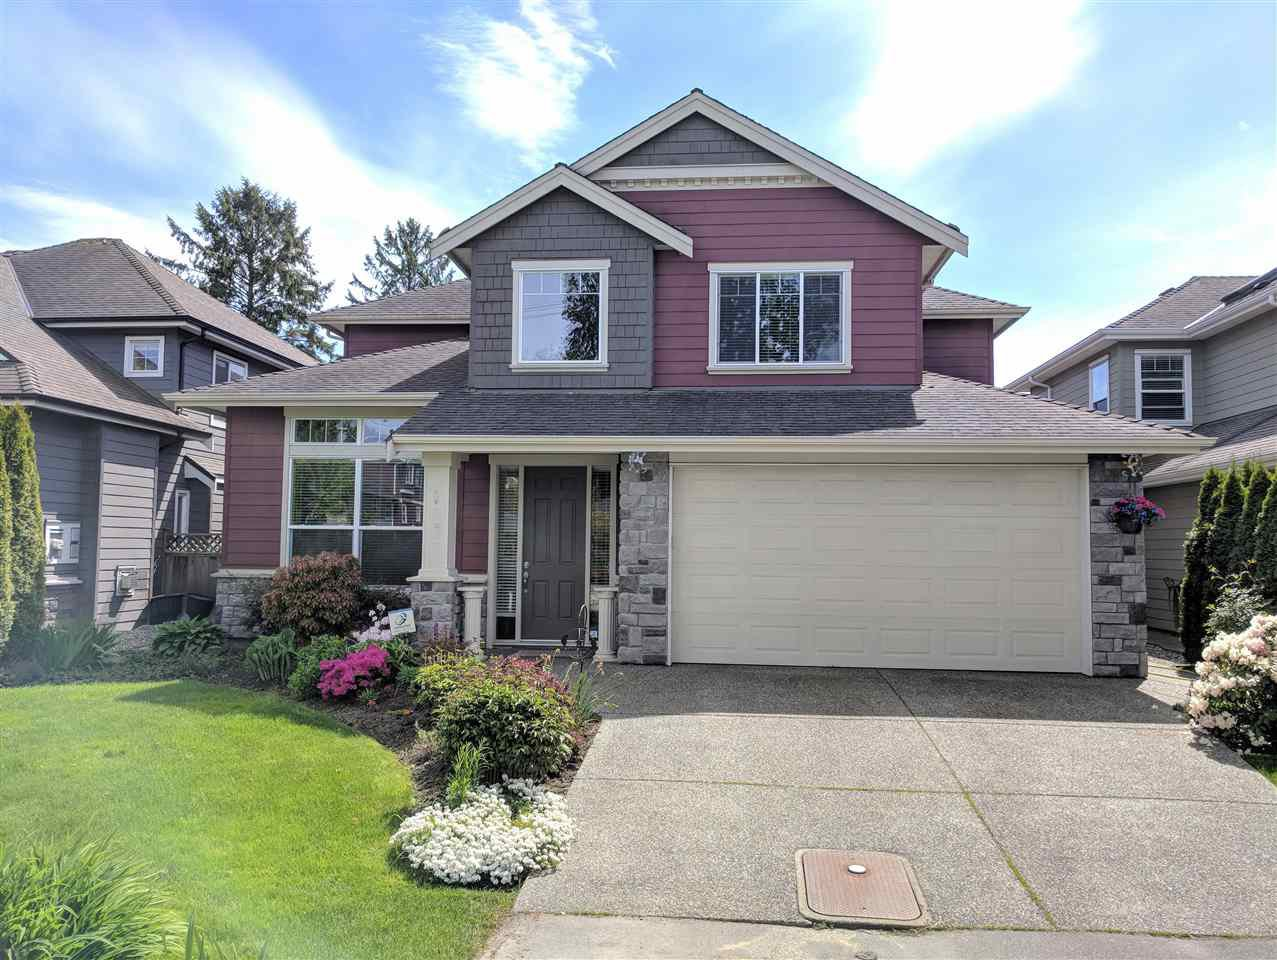 "Main Photo: 5126 45 Avenue in Delta: Ladner Elementary House for sale in ""ARTHUR GLENN"" (Ladner)  : MLS®# R2270431"